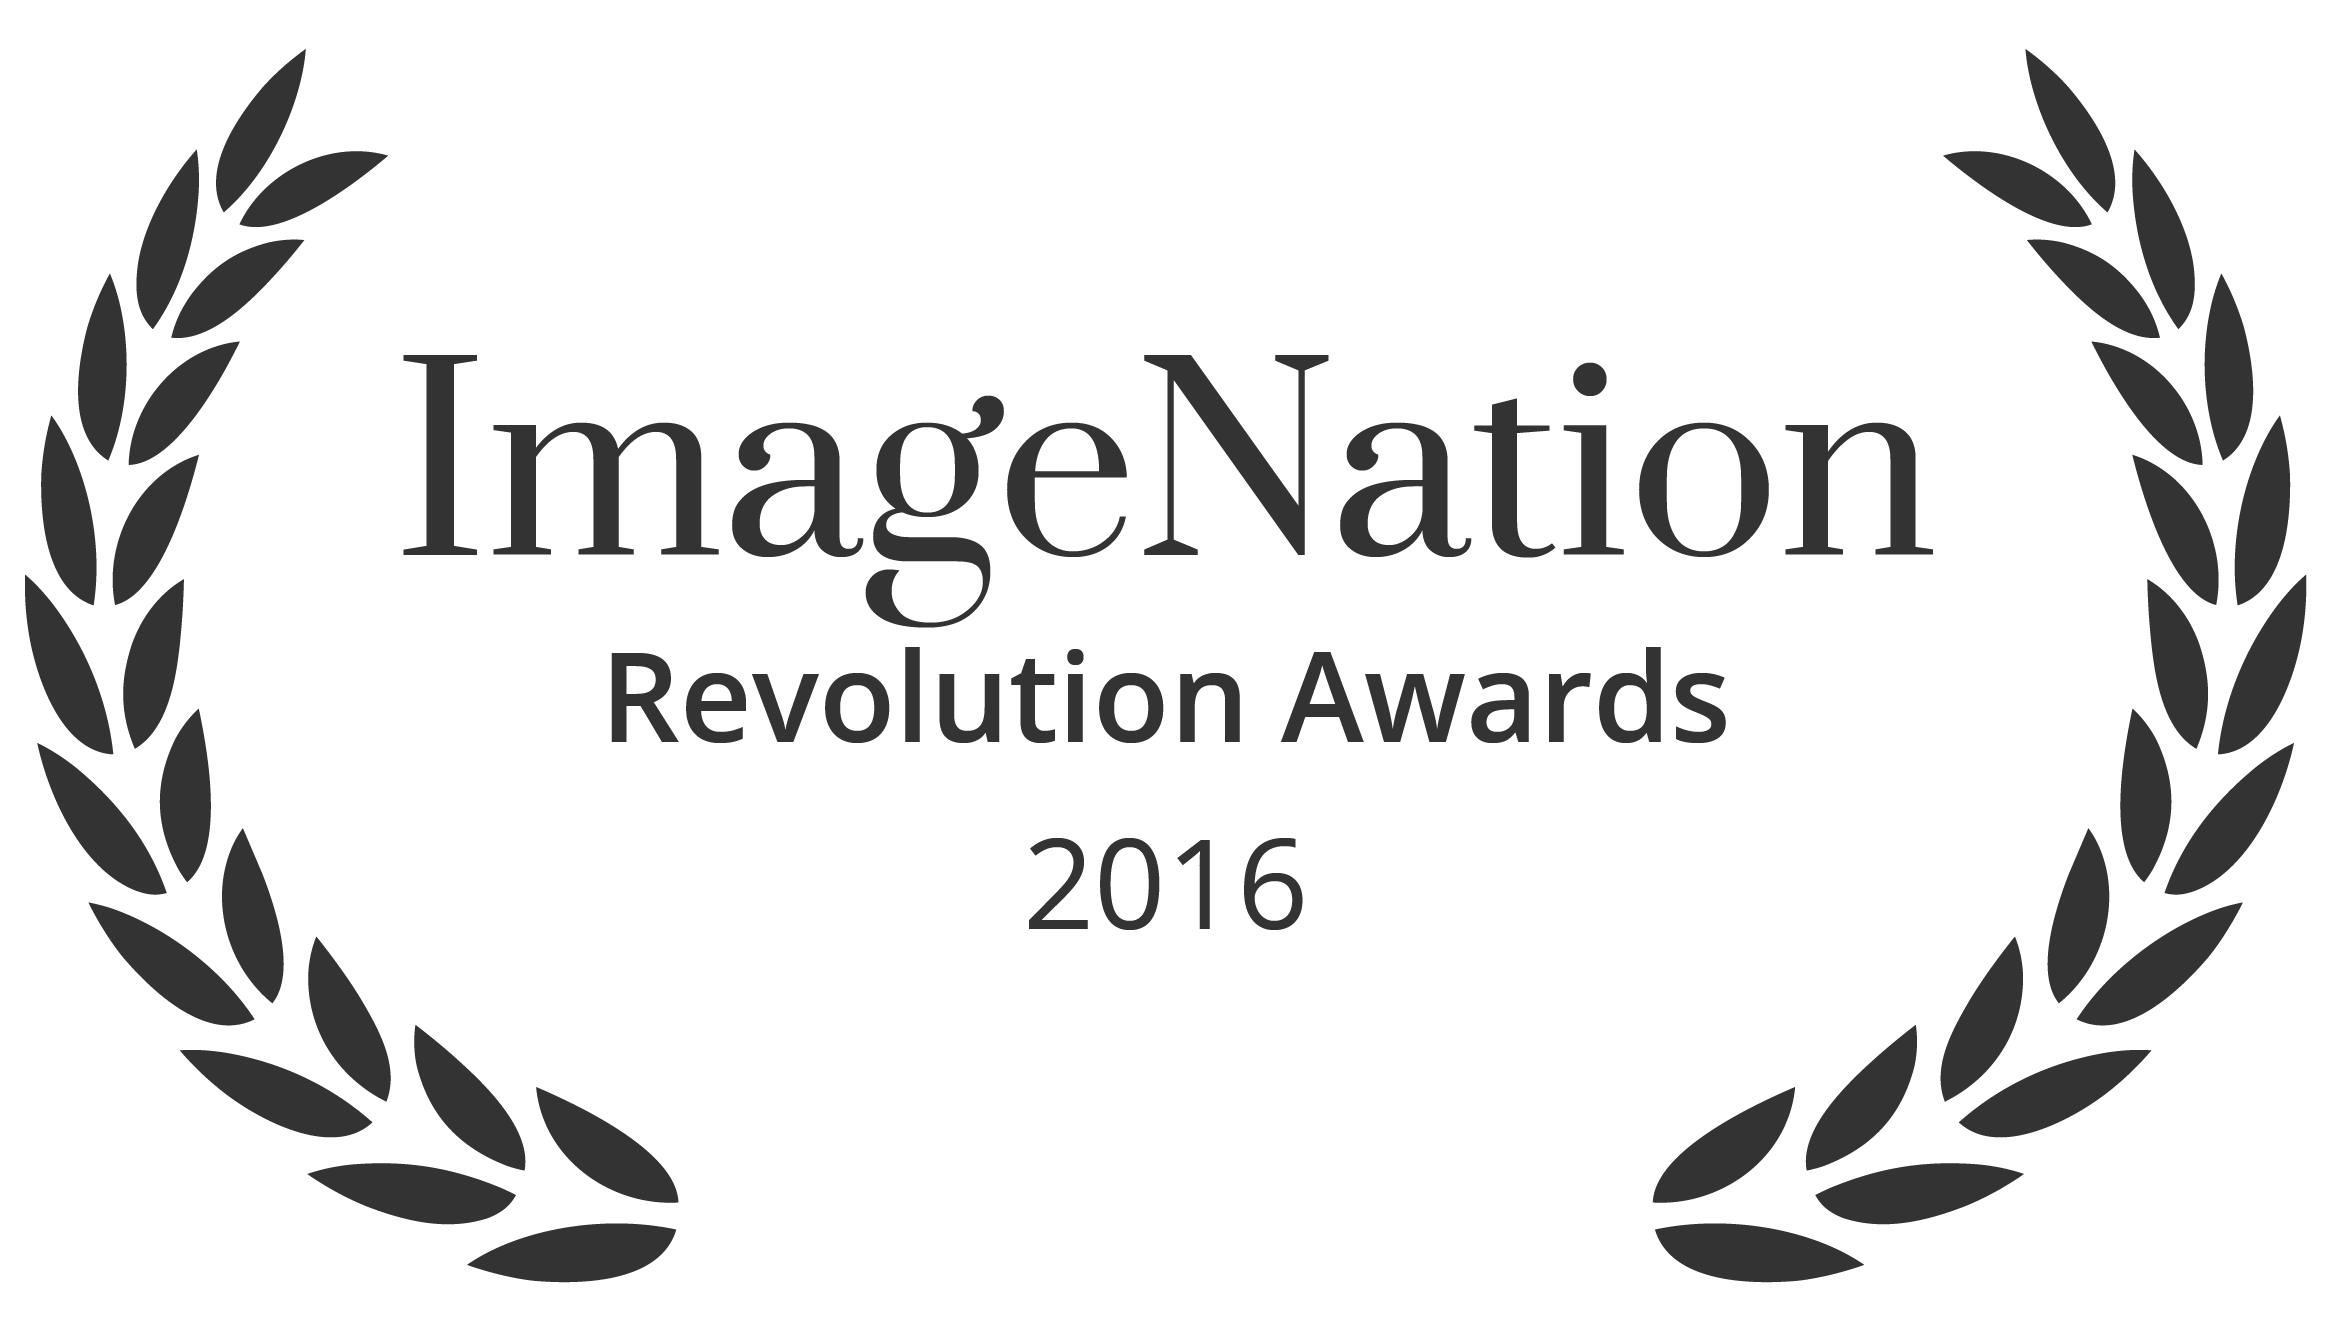 Image Nation - Revolution Awards